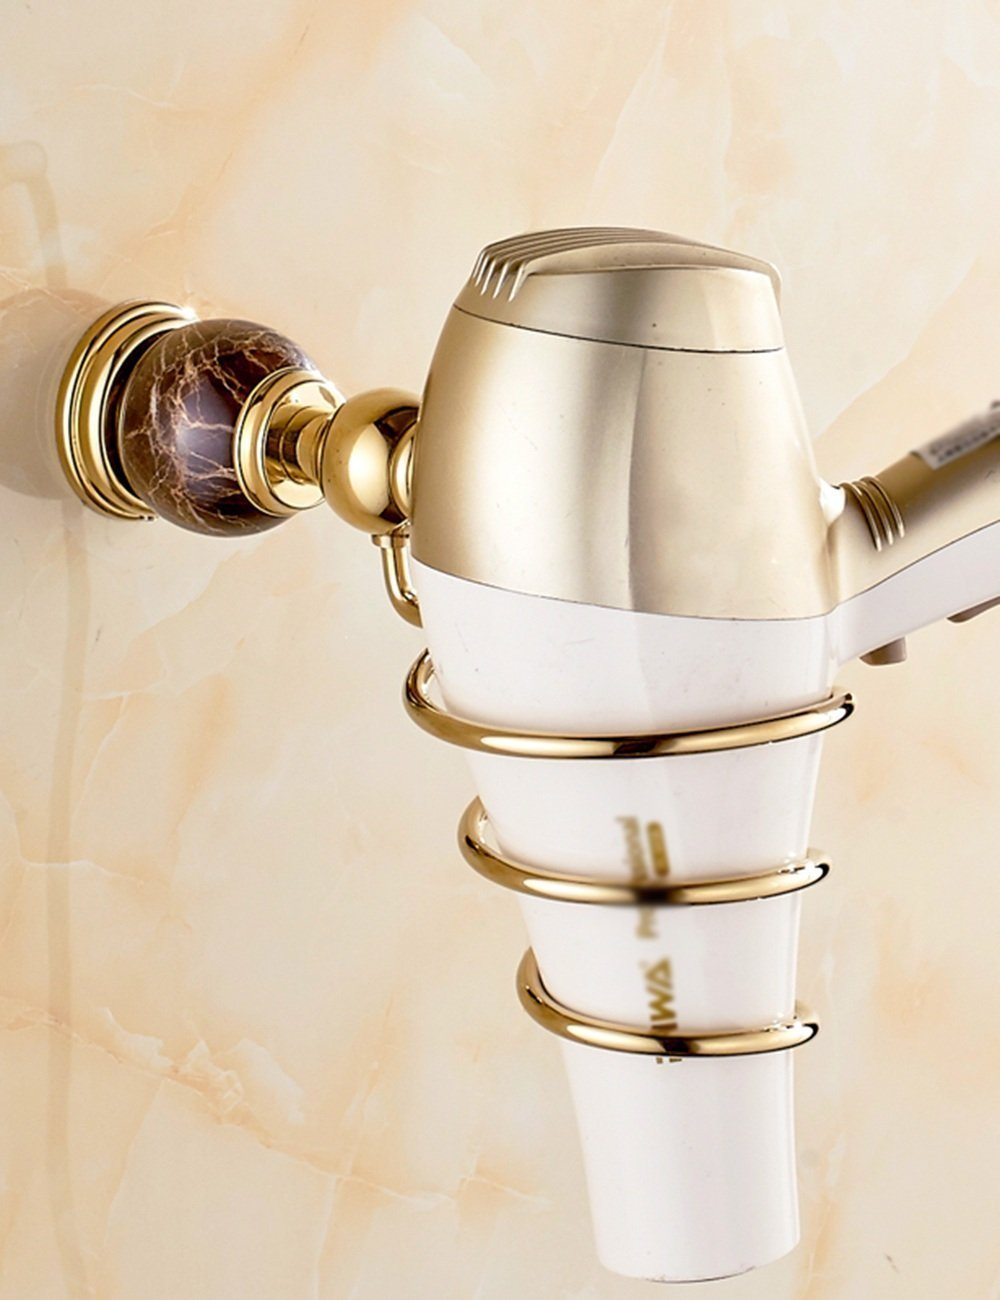 Hairdryer hairdryer copper pylons Europe style in the rack chassis hairdryer hairdryer pink gold ( Color: 1 , Size: A )